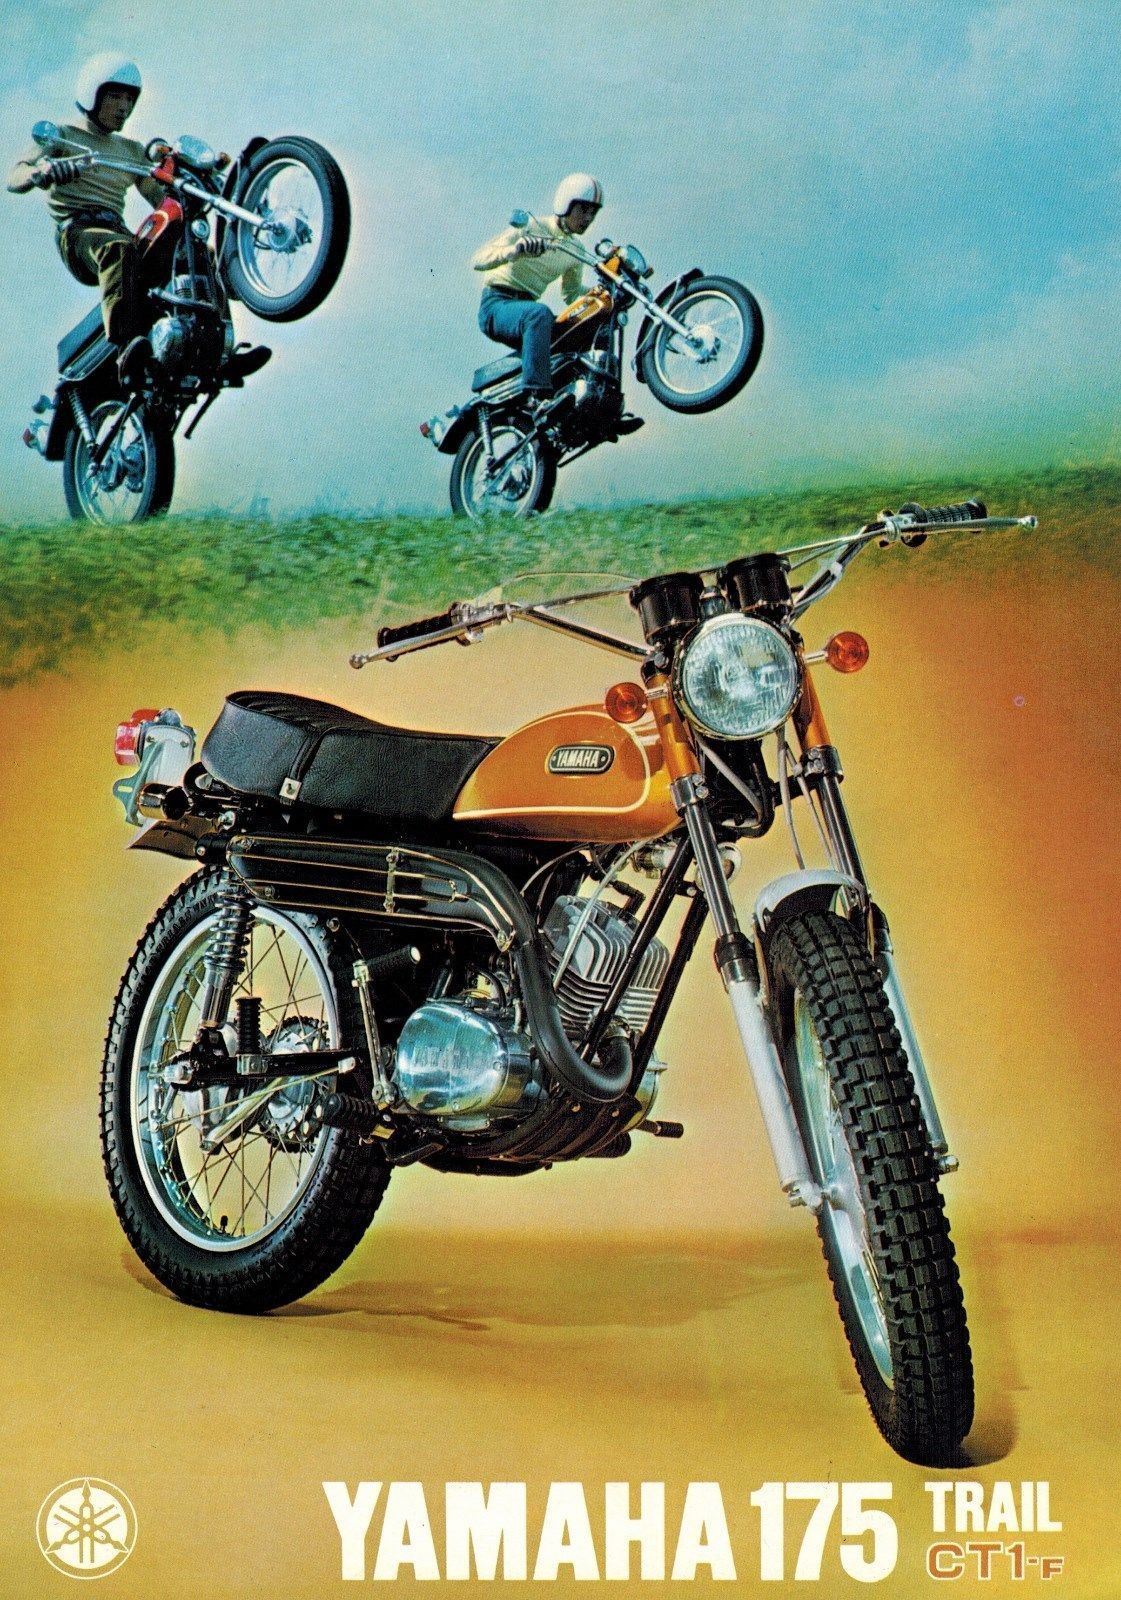 1970 Yamaha 175 Trail CT1 F 4 Pages Motorcycle Brochure | eBay